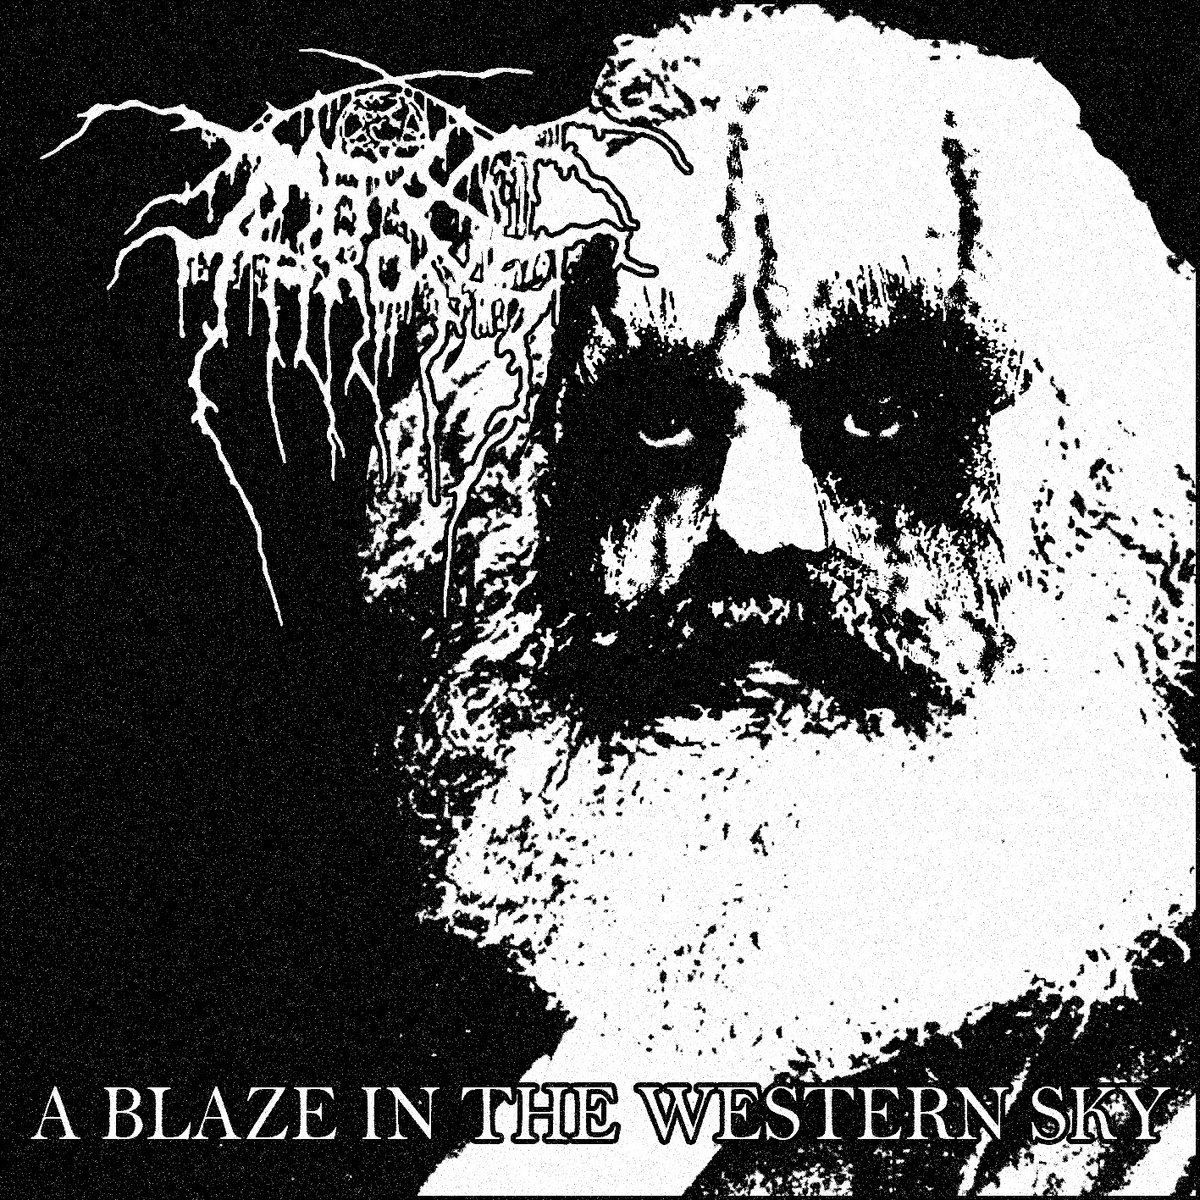 https://marxthrone.bandcamp.com/album/a-blaze-in-the-western-sky